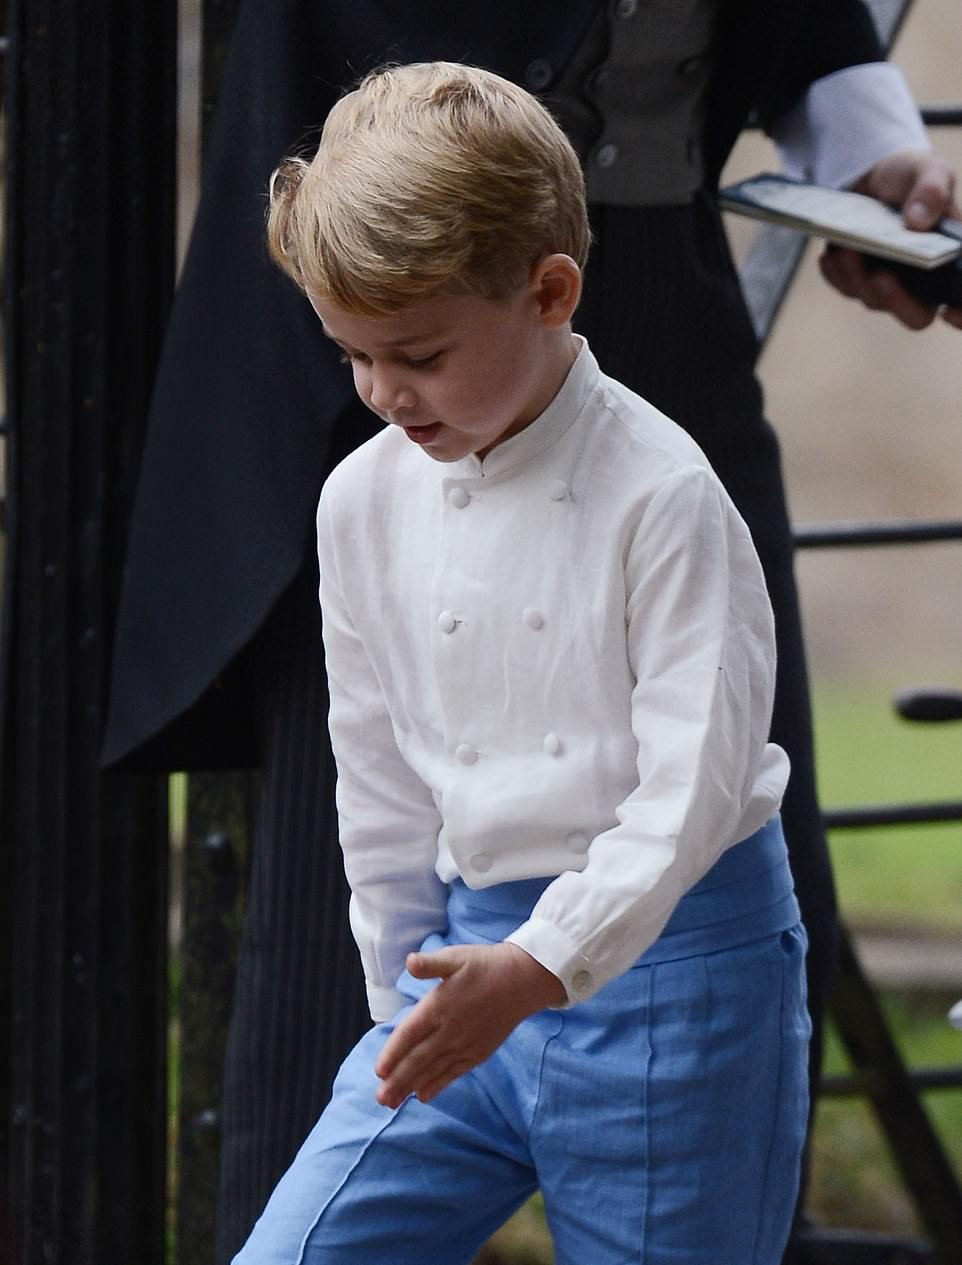 George wore a collarless white shirt, sky-blue knickerbockers, white stockings and white loafers